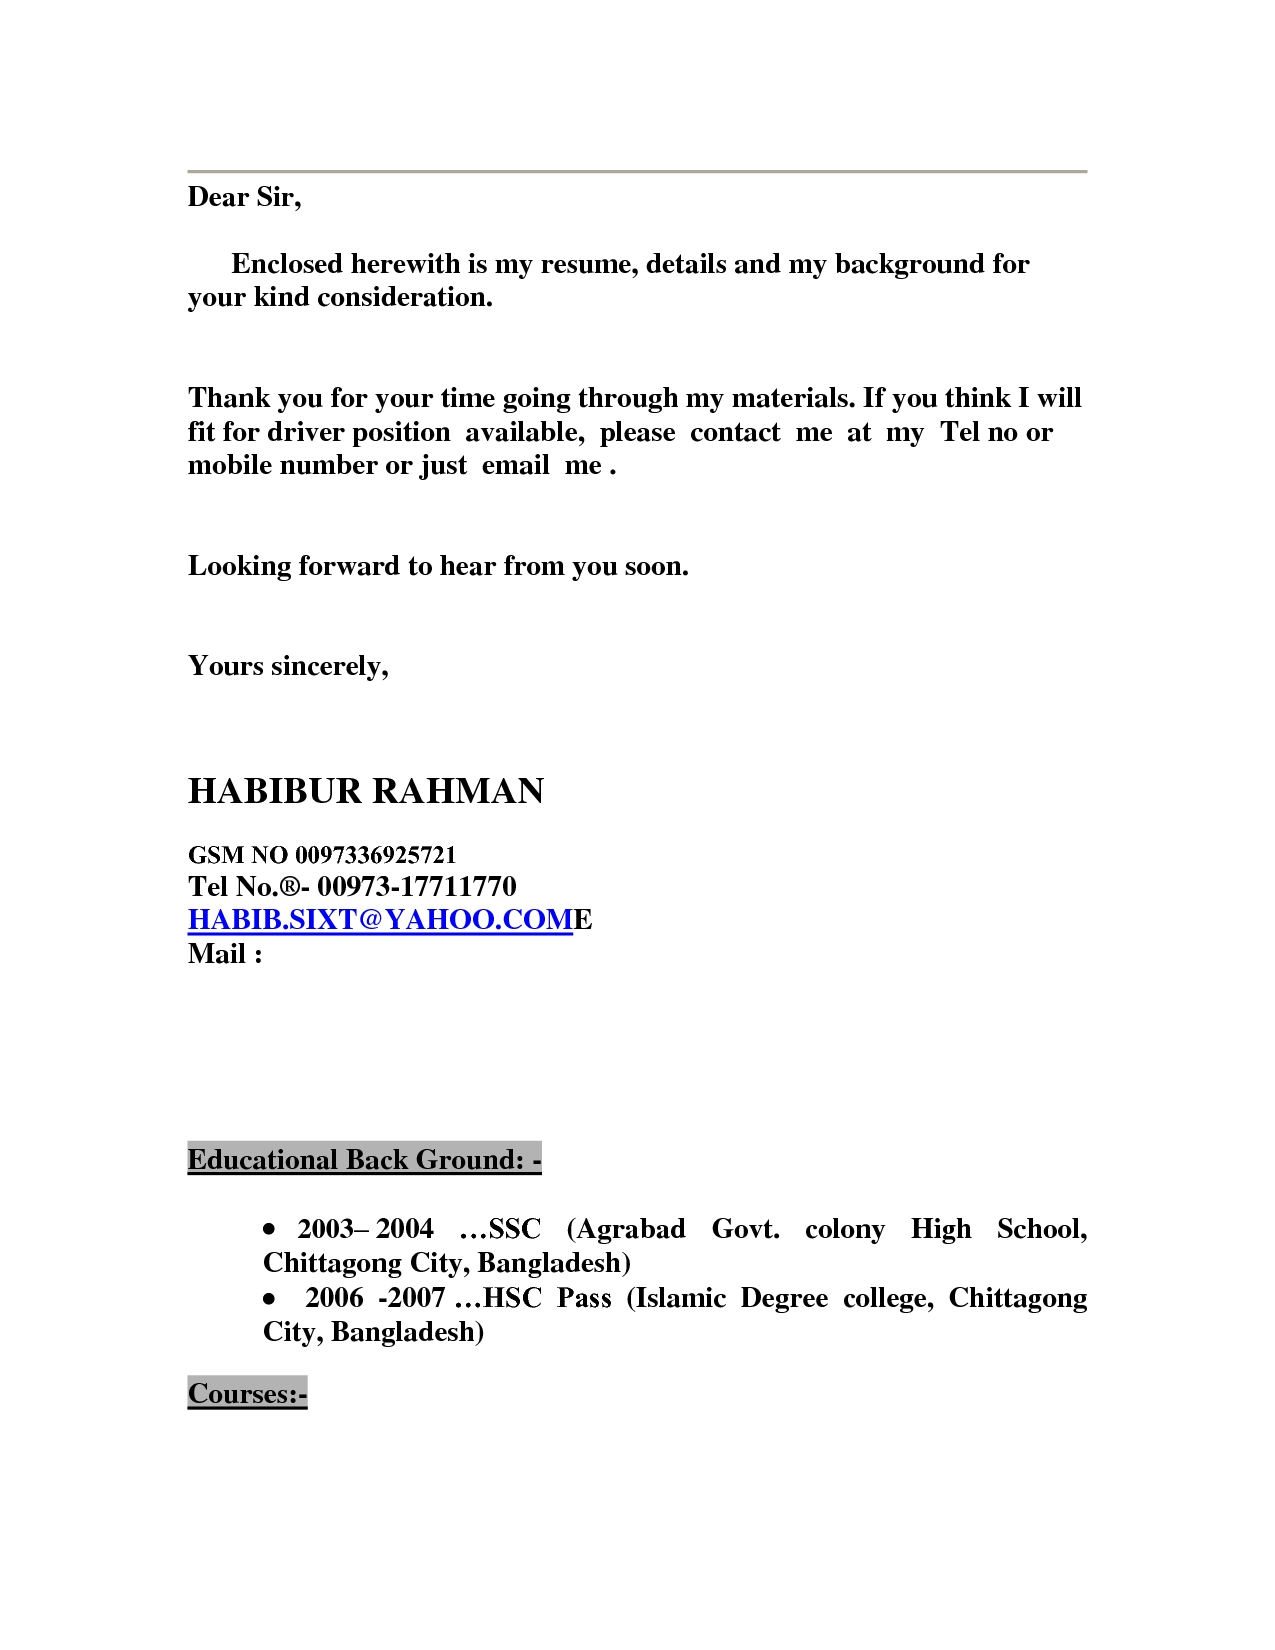 Find My Resume Please Find Enclosed My Resume Resume Ideas